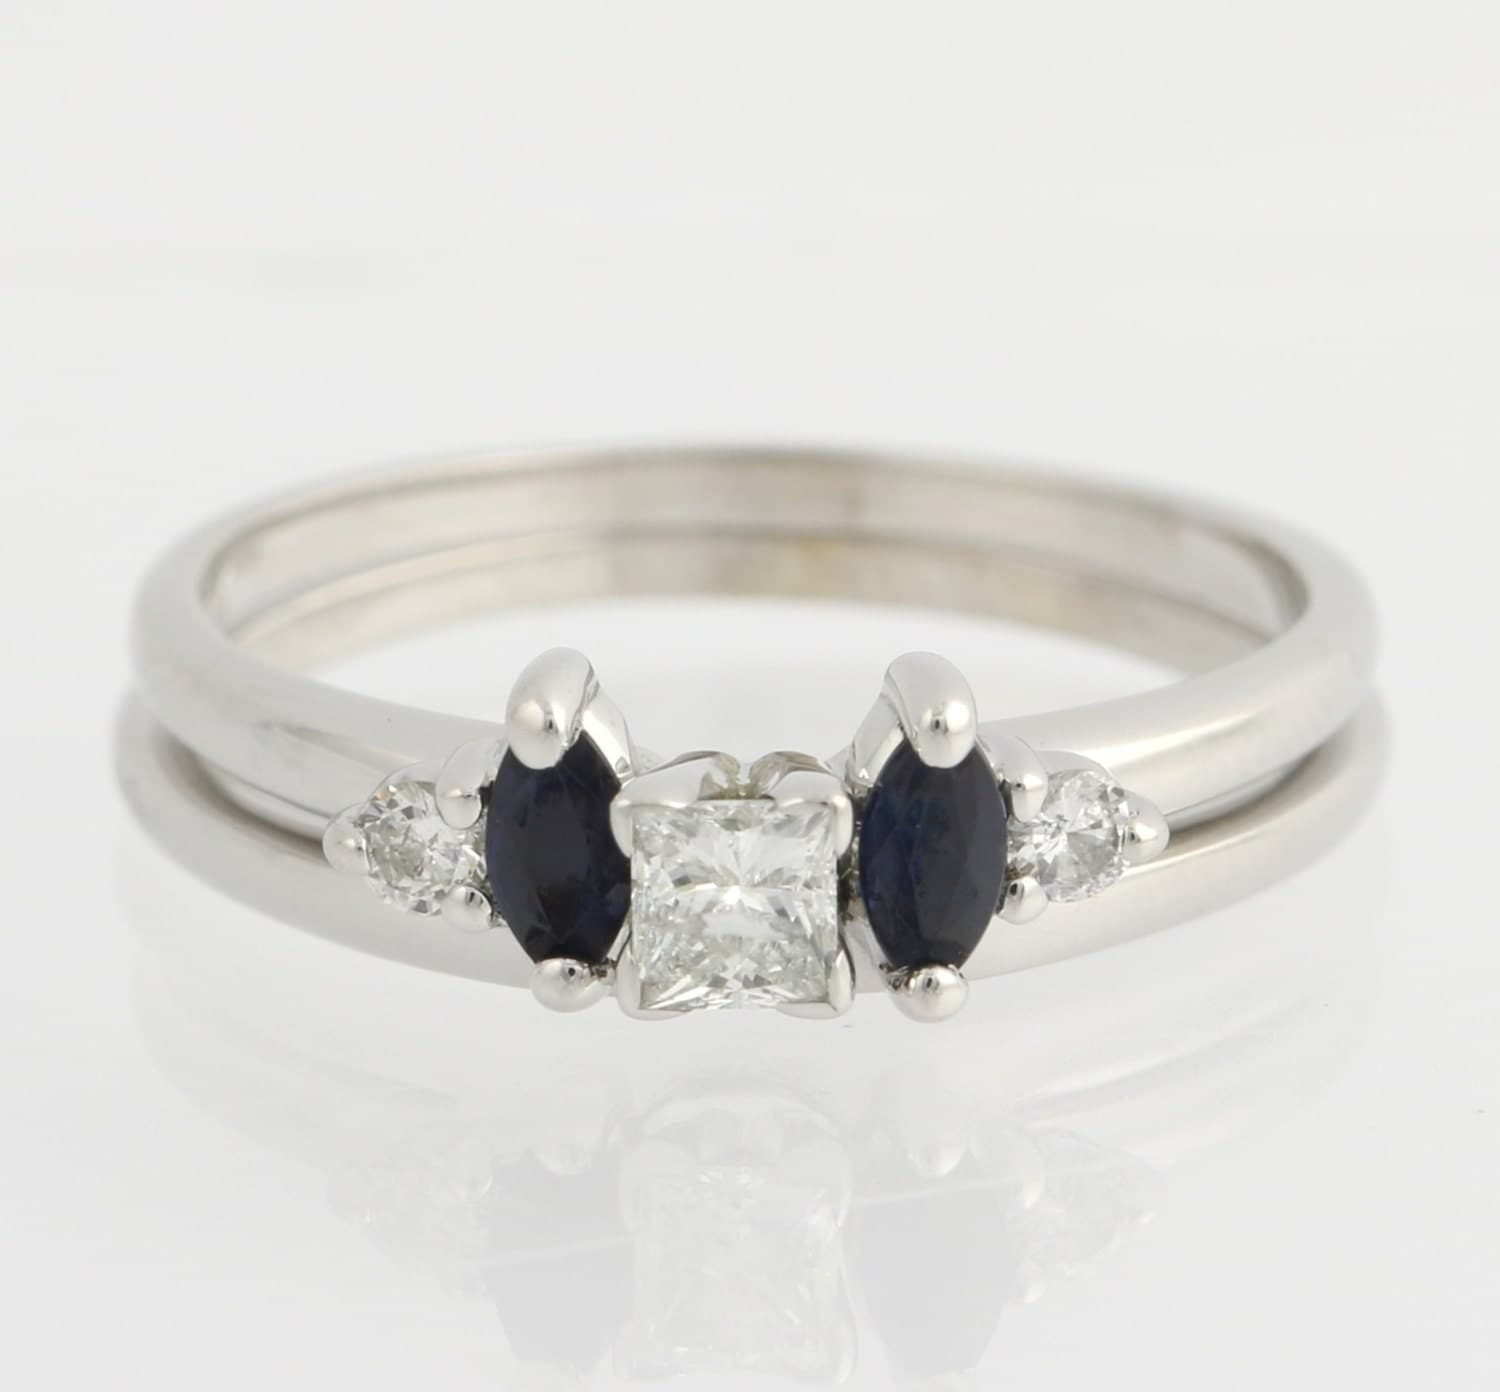 engagement ring sapphire wedding enhancer band set solitaire